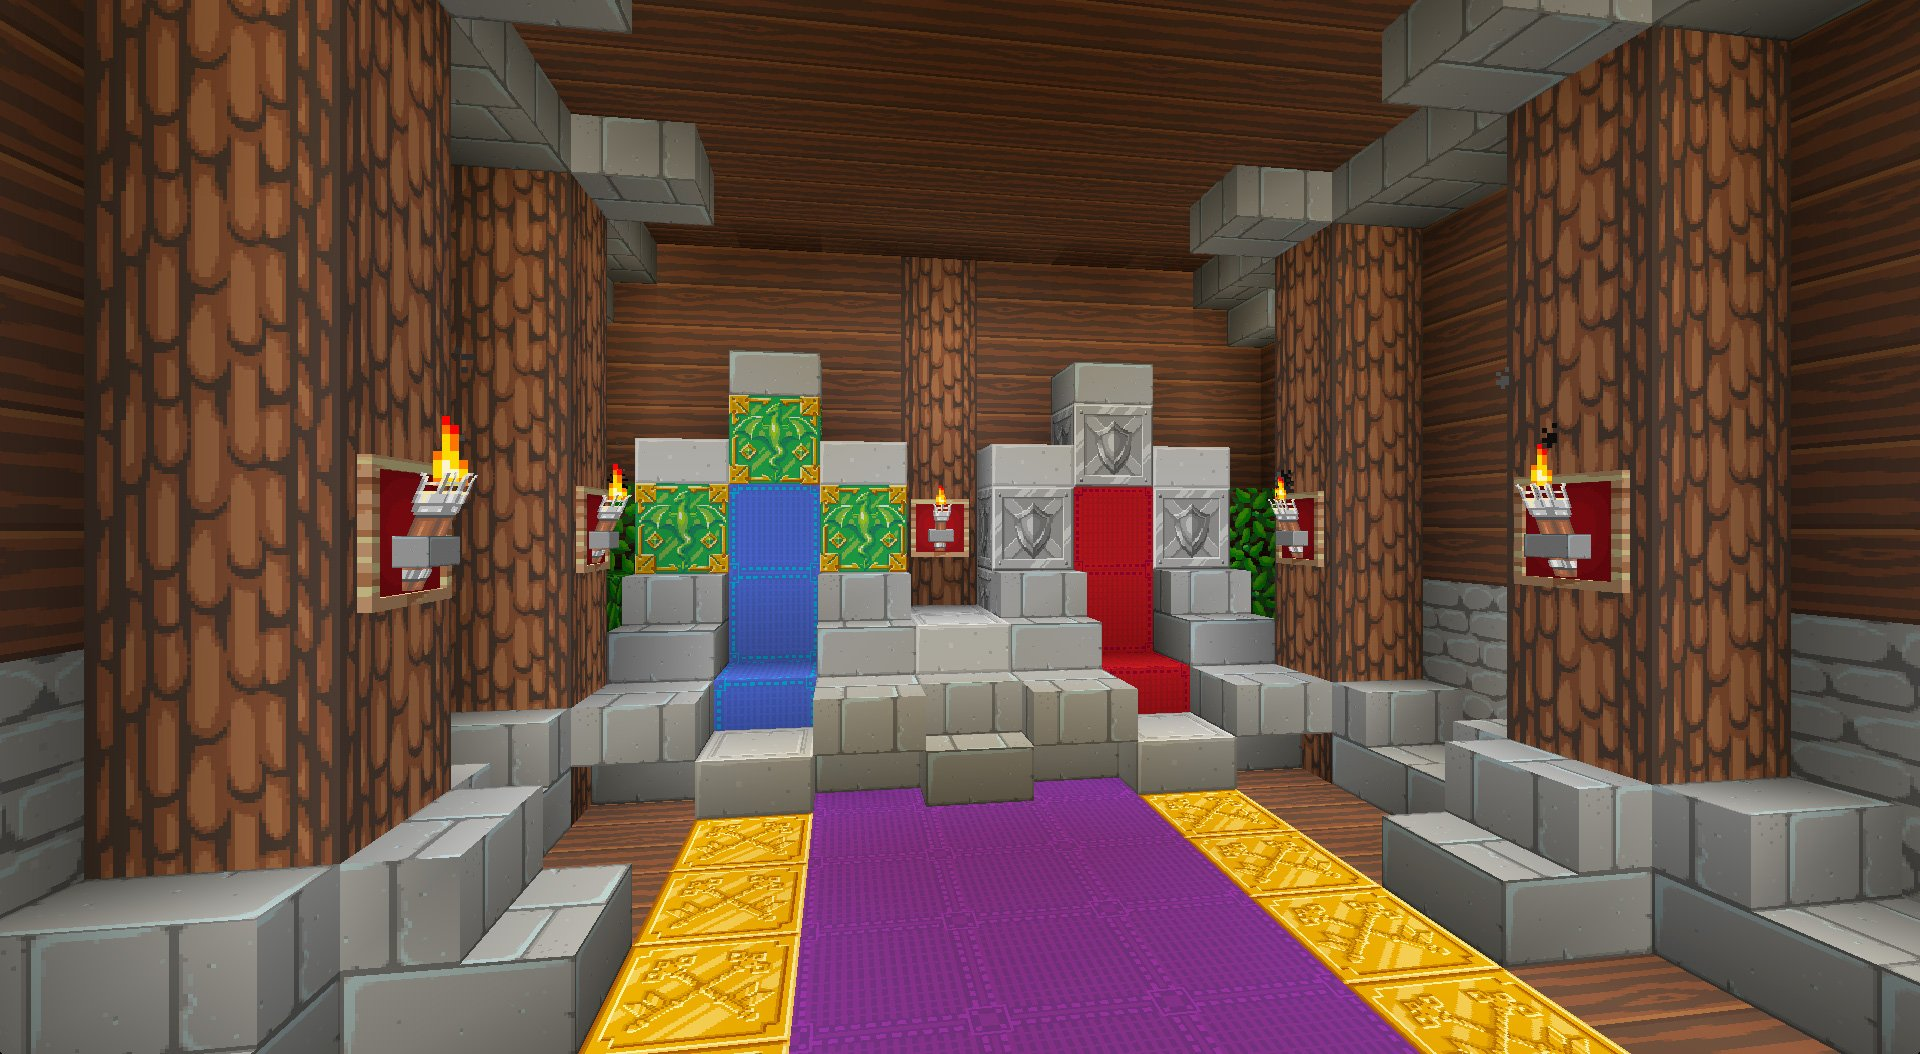 how to download dragon dance texture pack